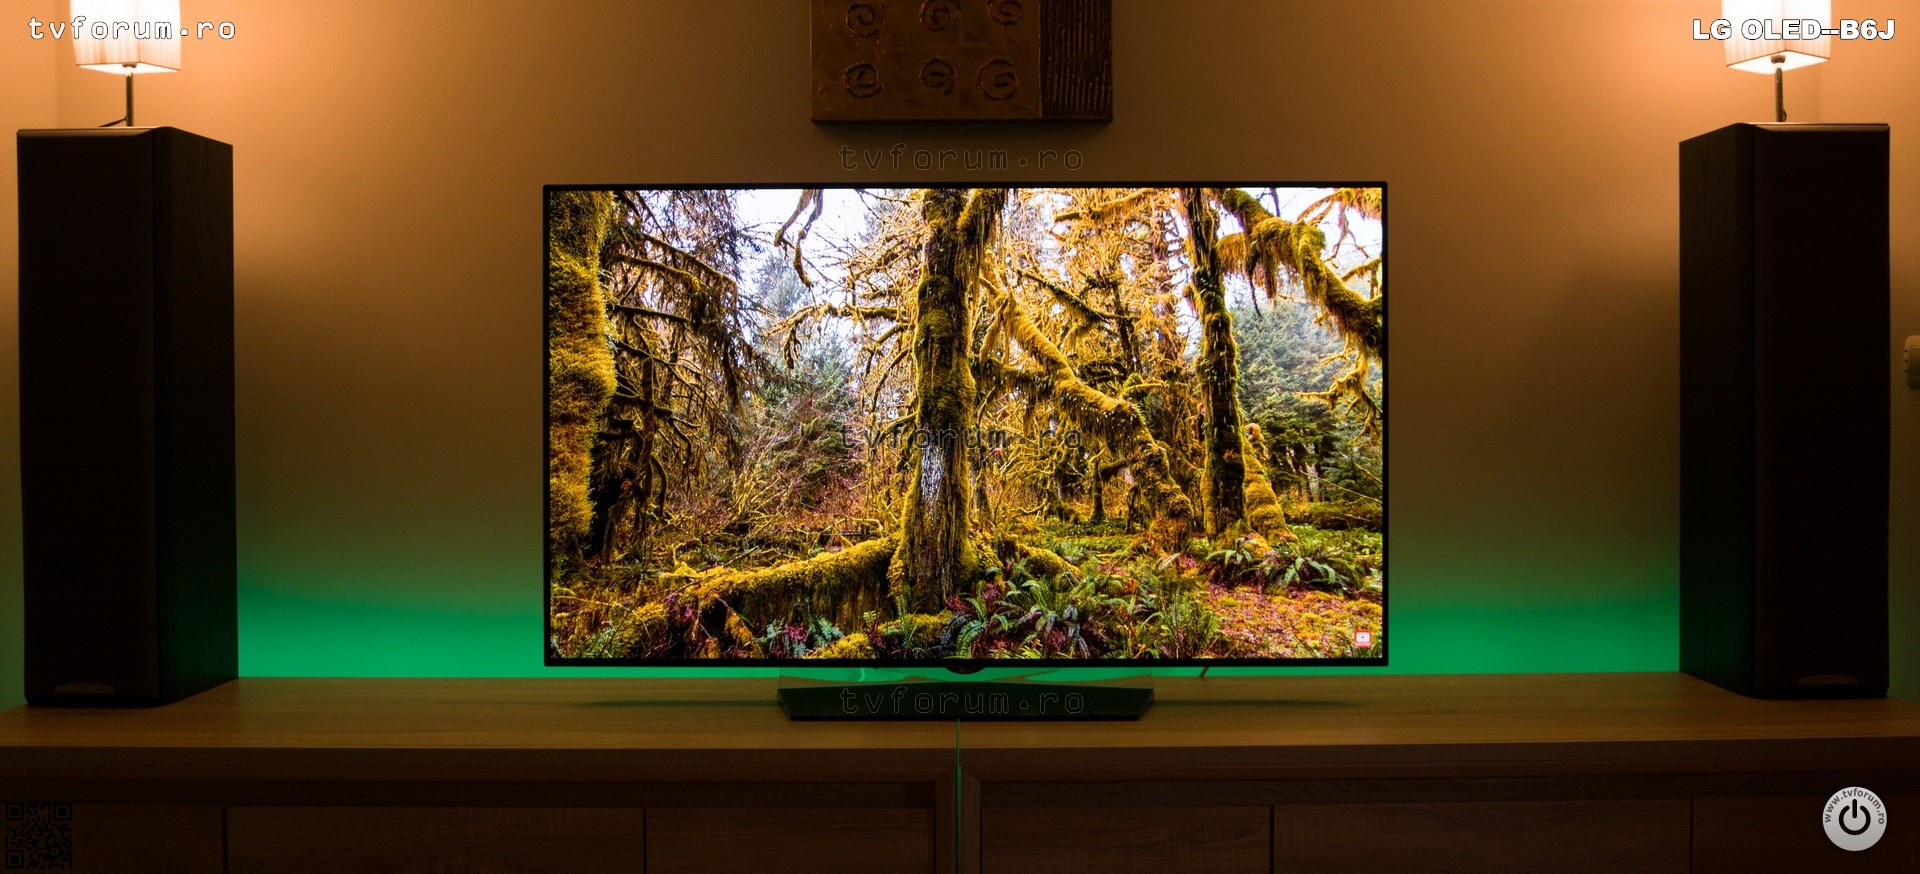 LG OLED55B6J OLED65B6J Review Front Ambiental Light